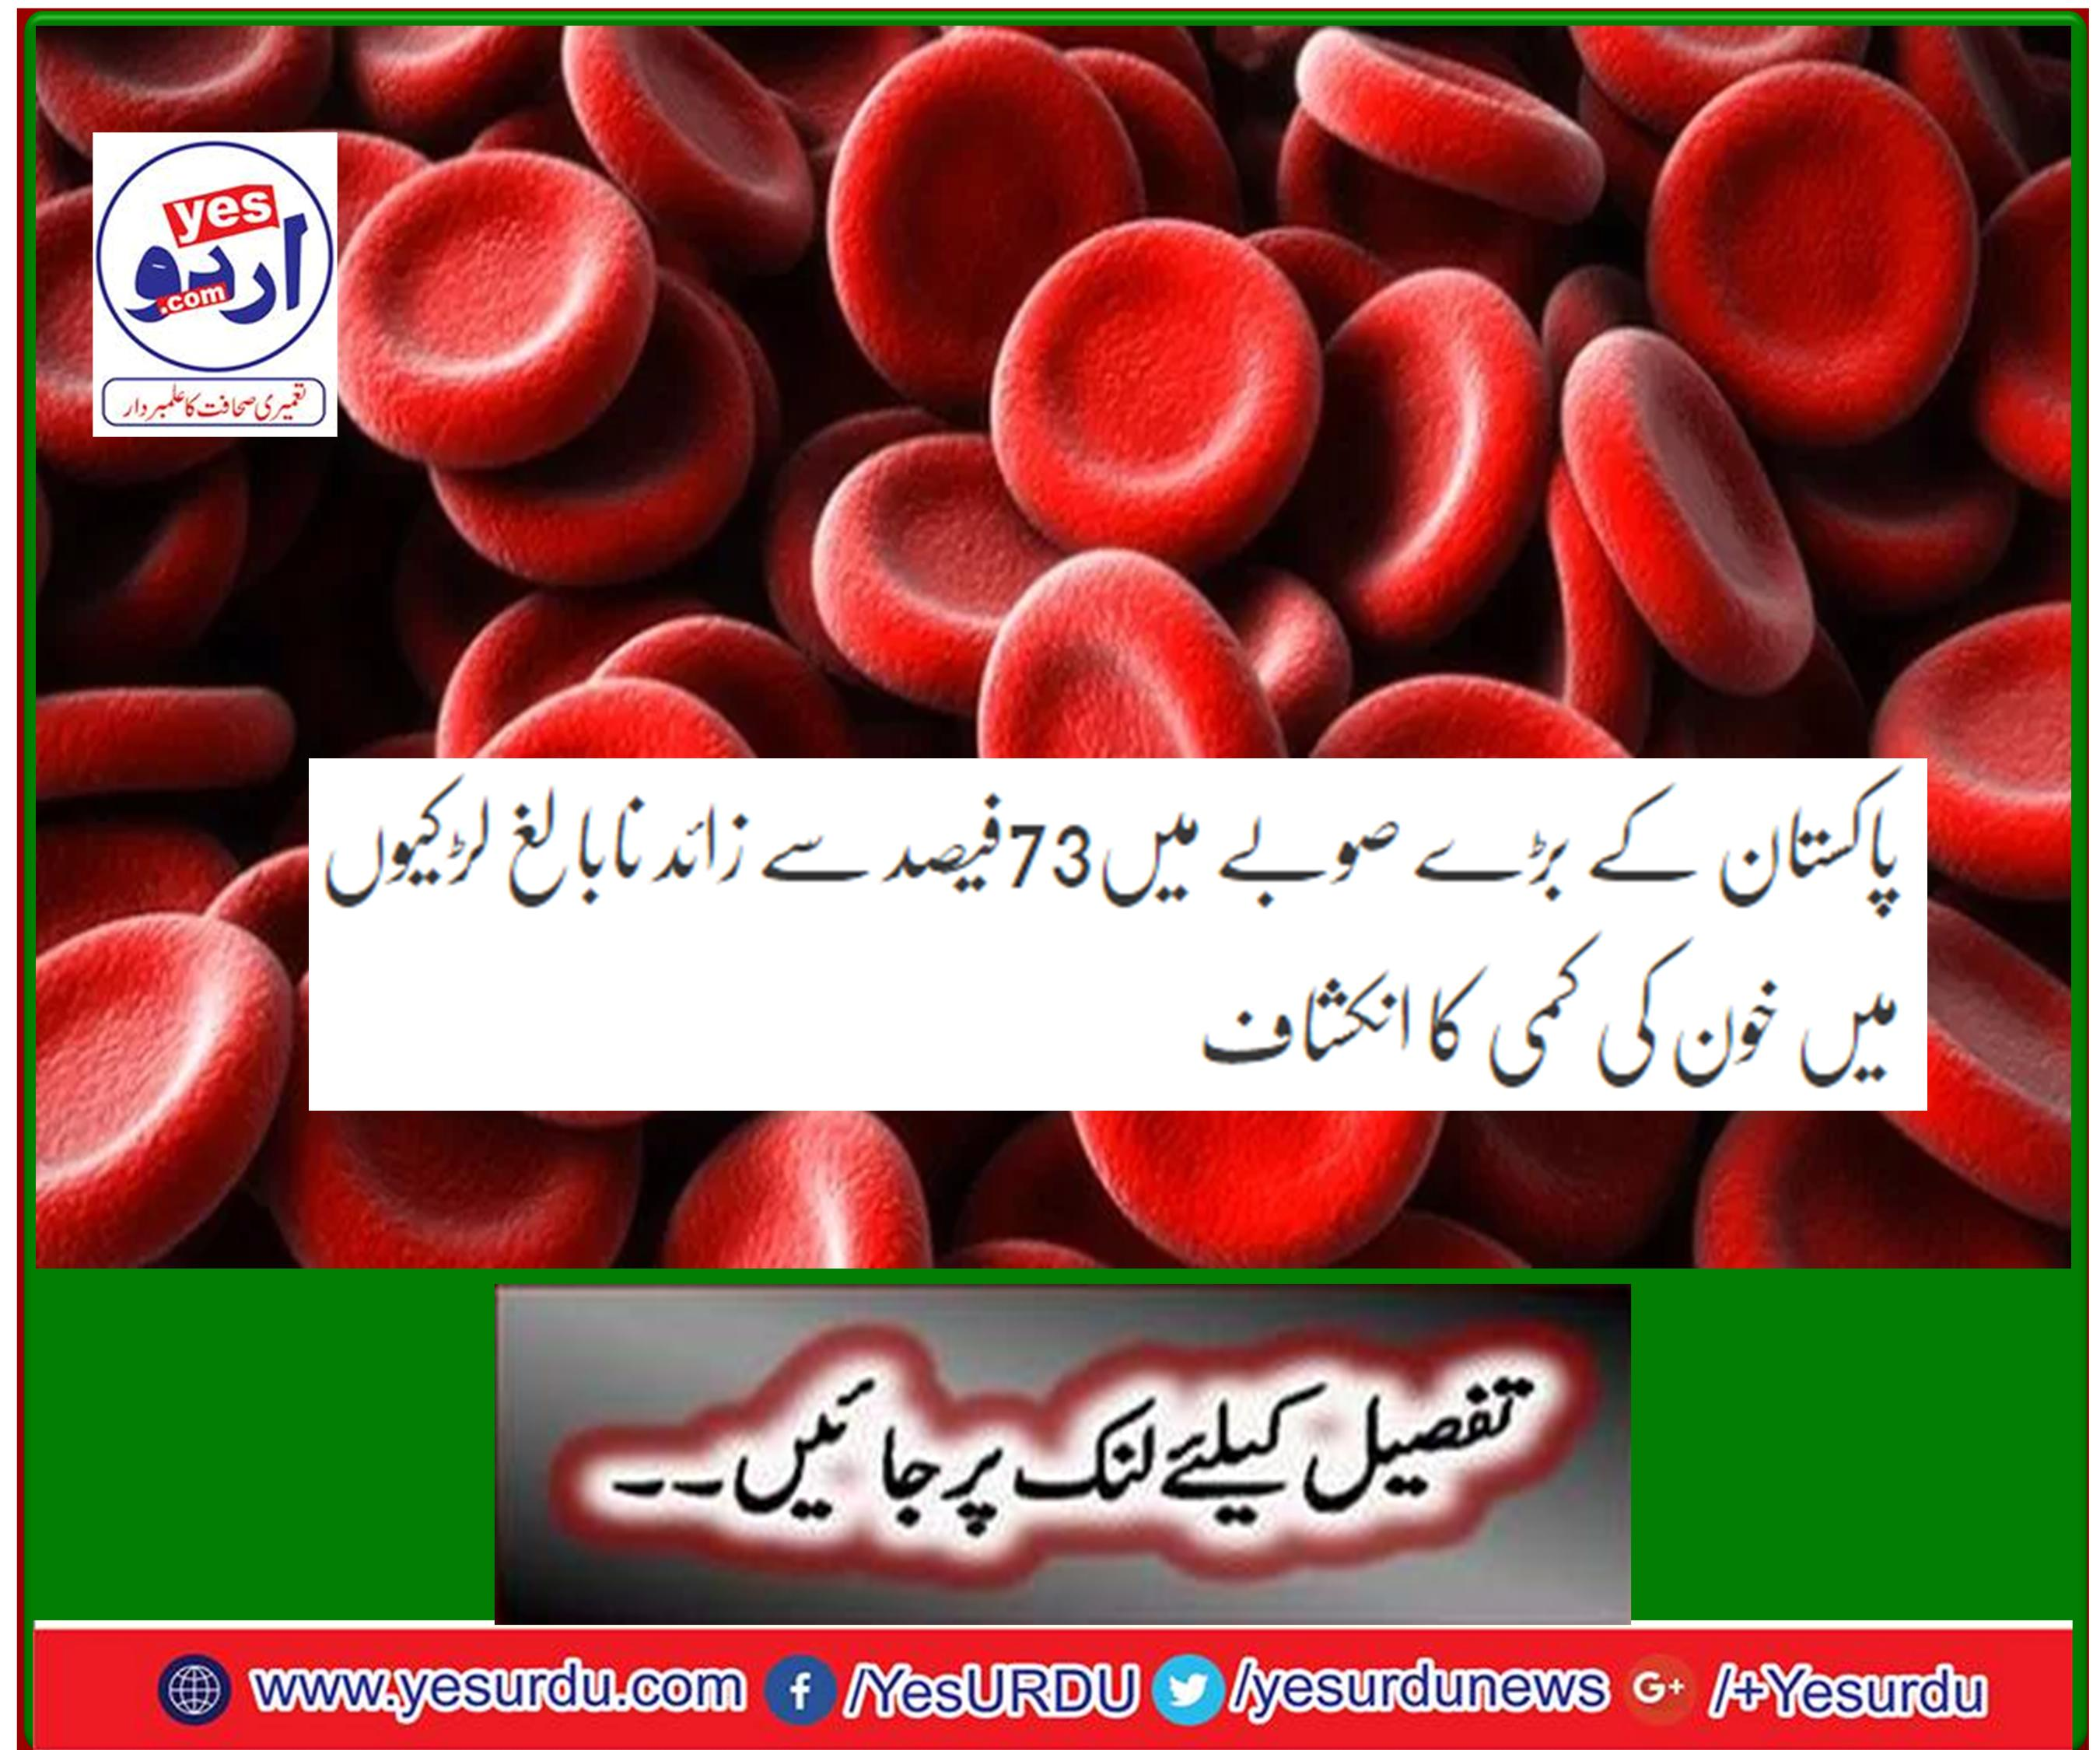 More than 73% of juvenile girls reported anemia in major provinces of Pakistan